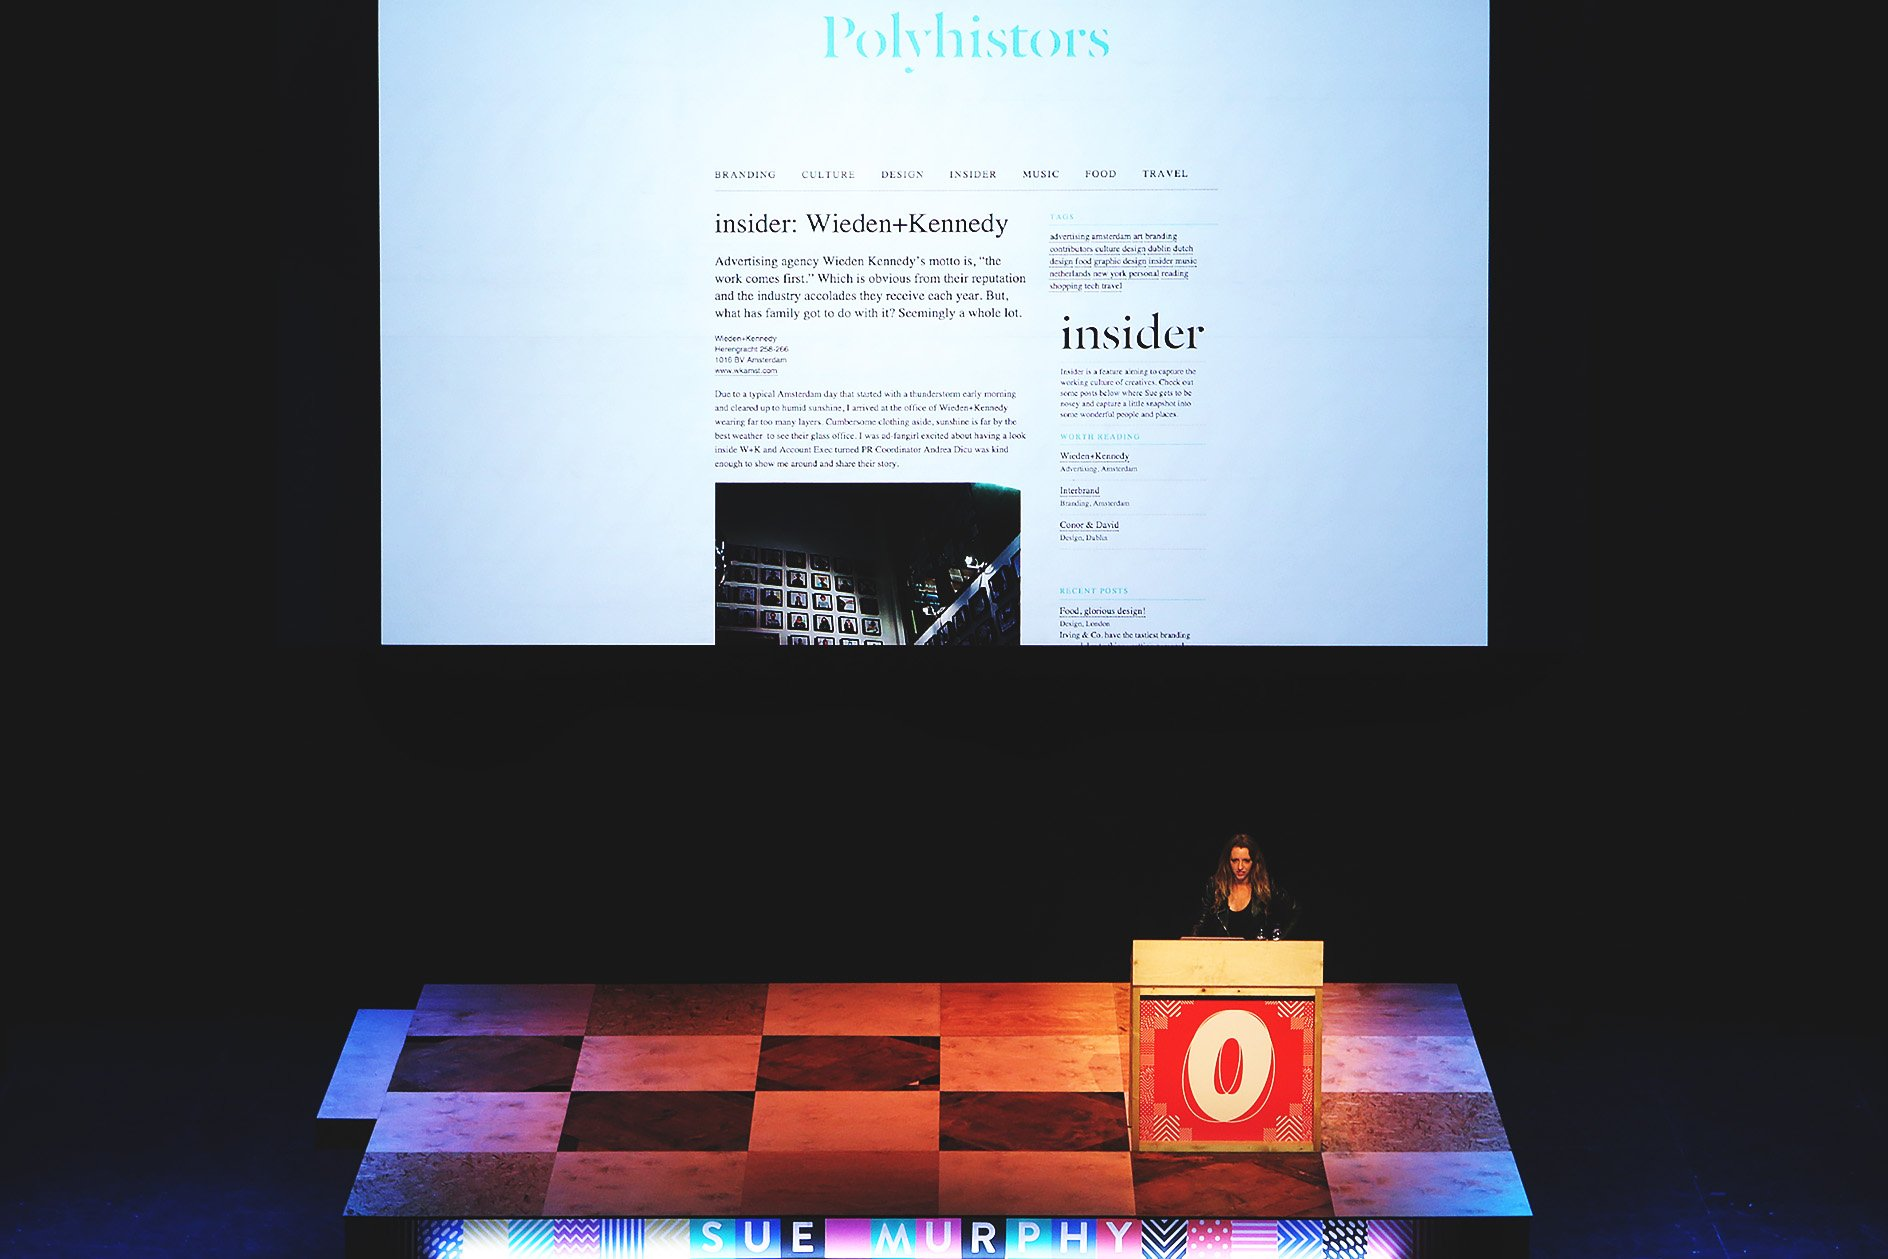 Sue Murphy at OFFSET 2015 – Polyhistors